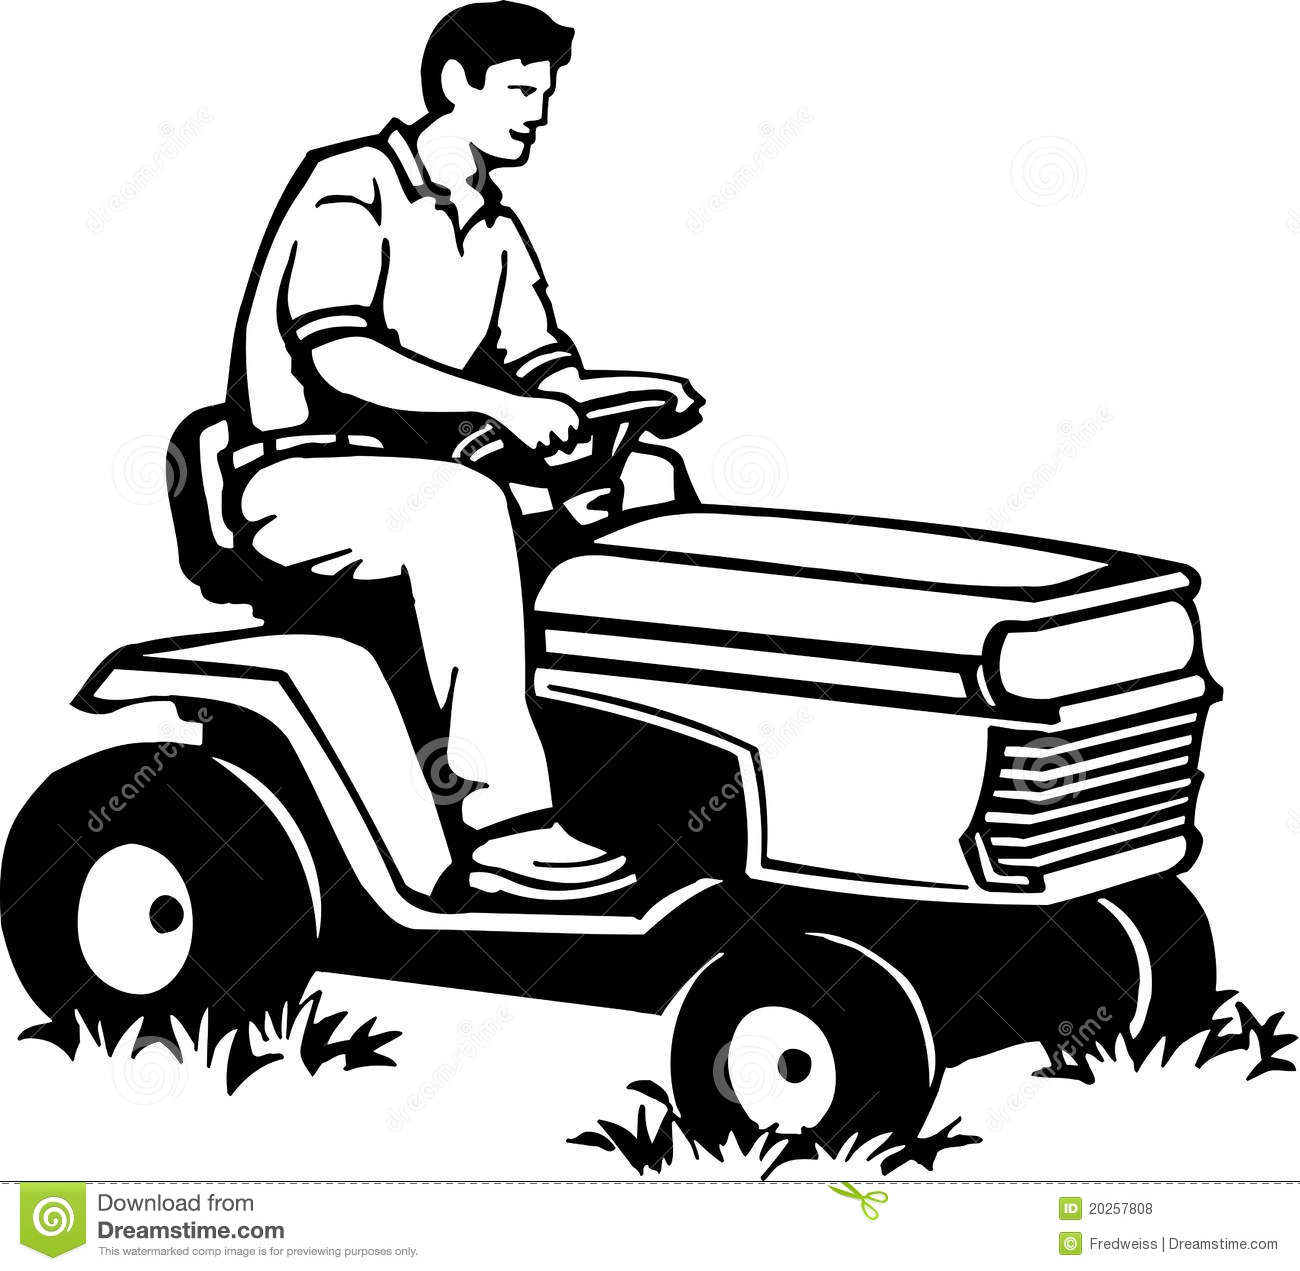 Riding Lawn Mower Stock Vector Illustration Of Lawnmower